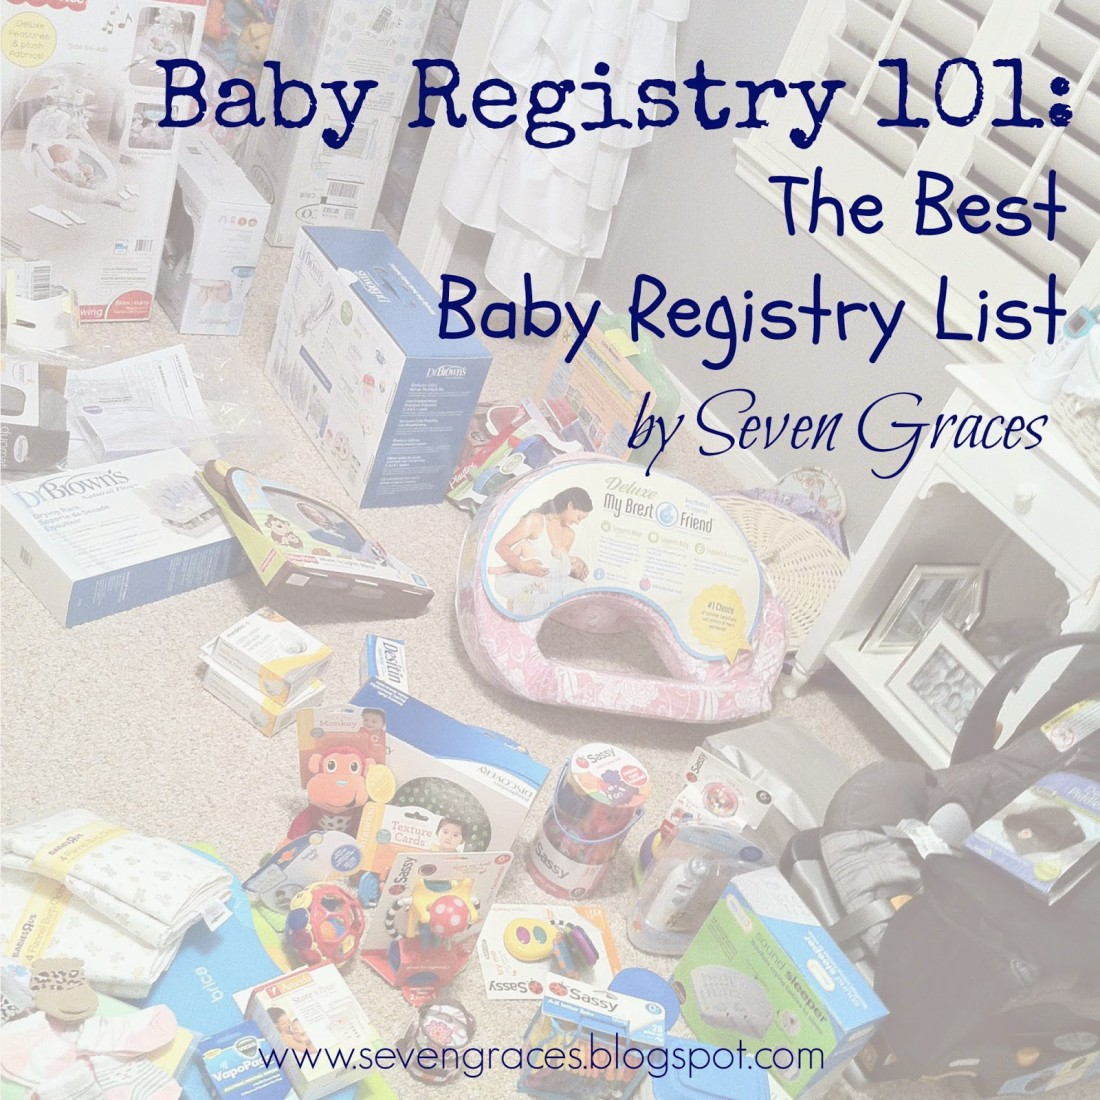 The Best Baby Registry Ever: Part 1, Baby Feeding (Also, a Cute Photo of My Baby)